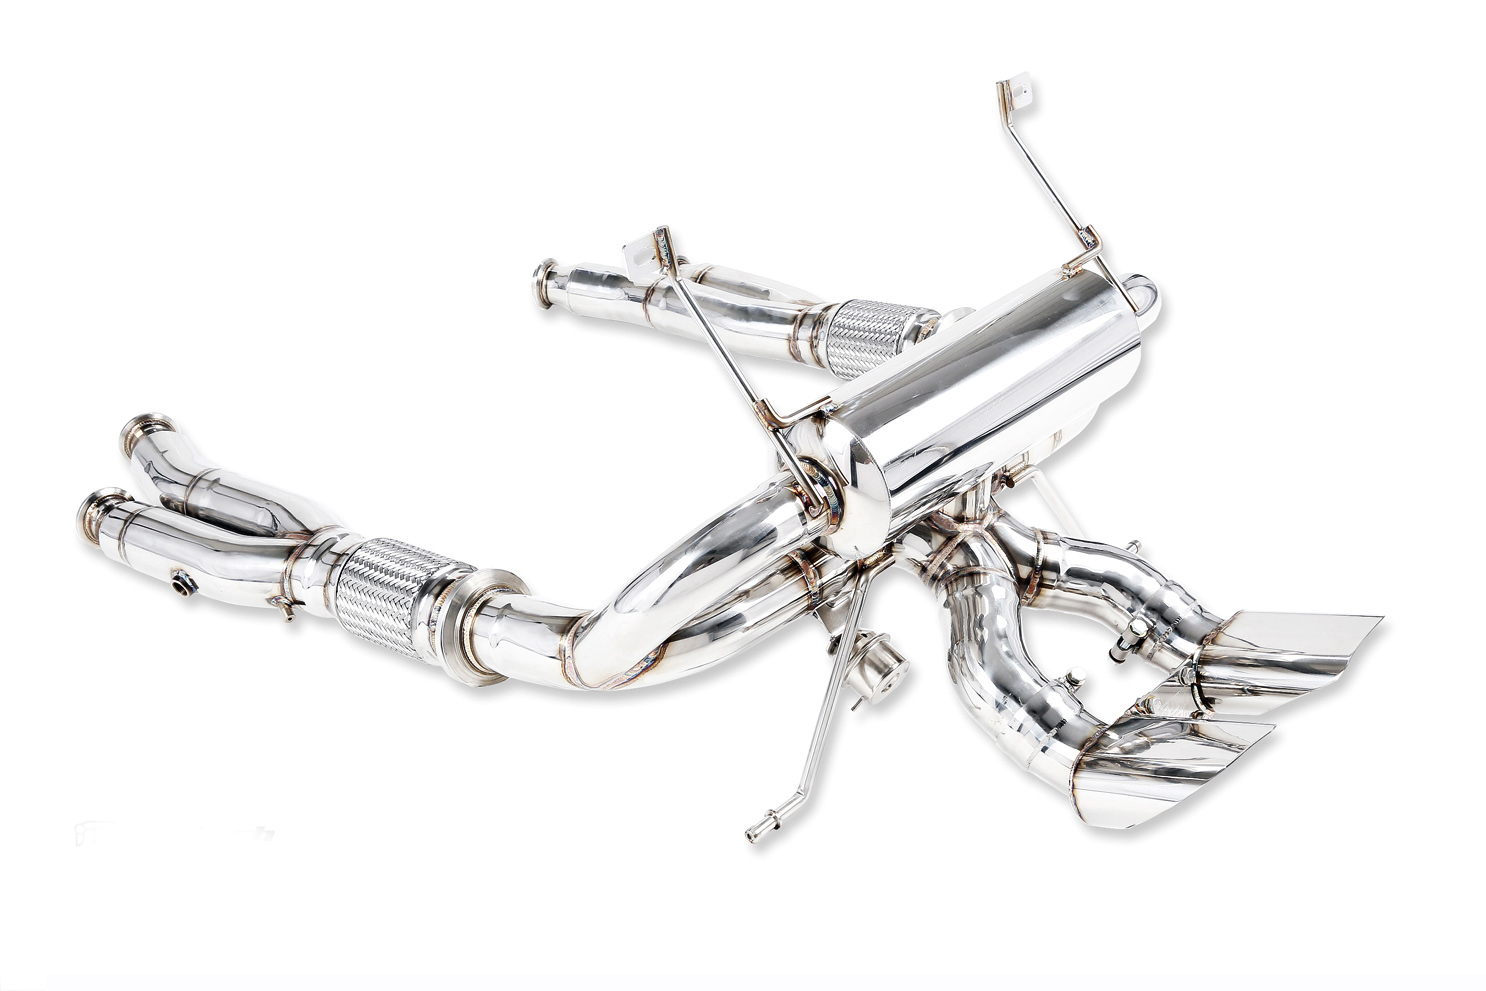 Ipe Exhaust Systems